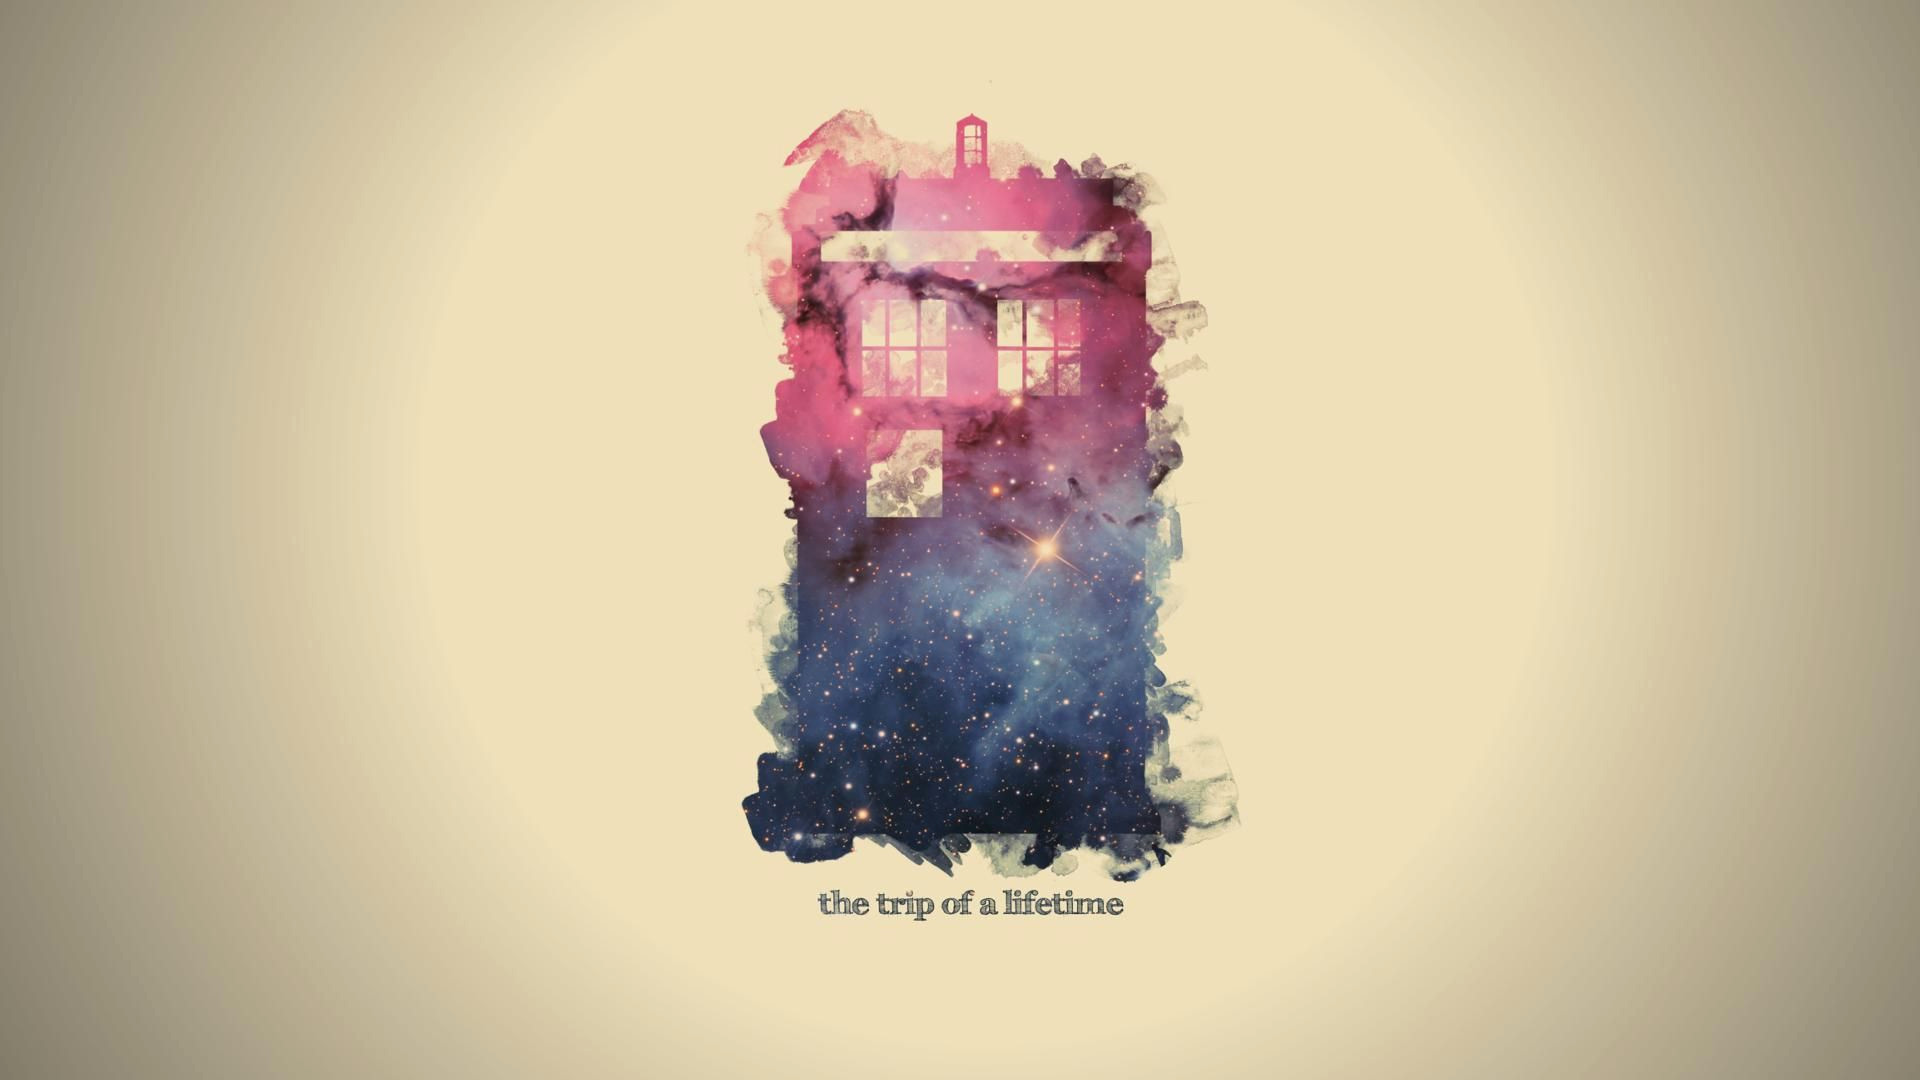 Res: 1920x1080, Doctor who Wallpaper Best Of Doctor who Wallpaper Doctor who Pinterest